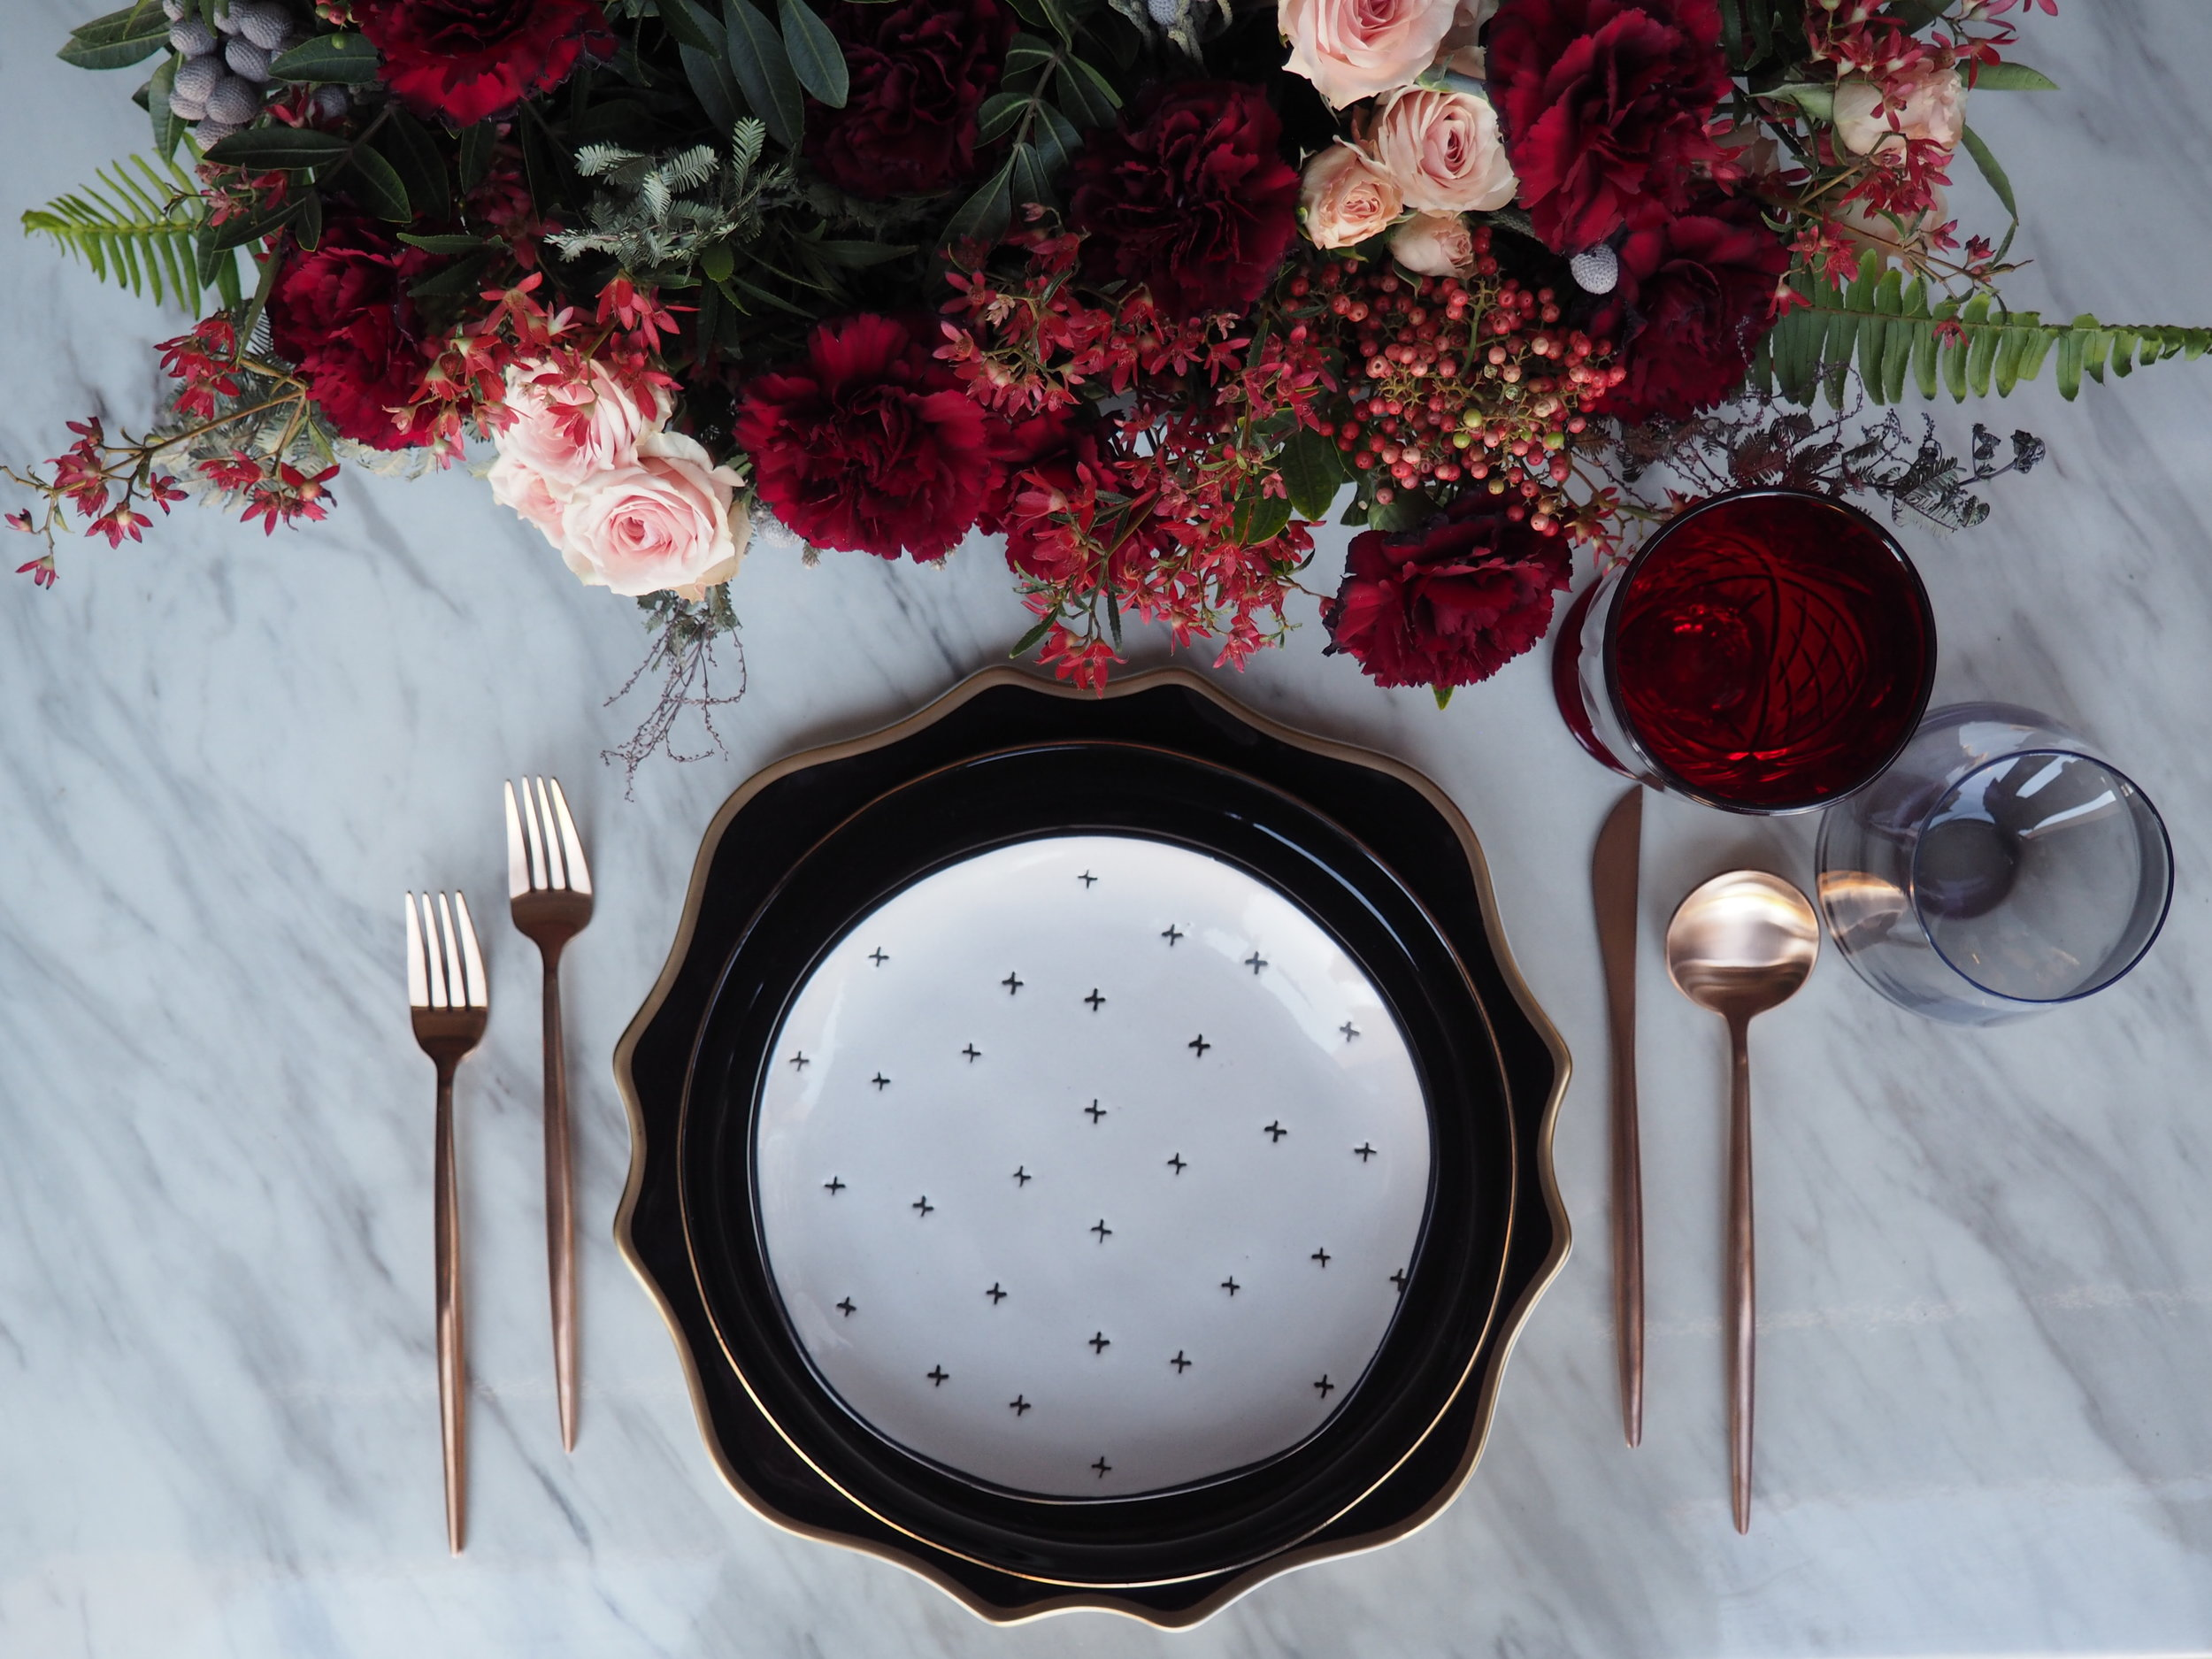 Featuring: Smoke Grey Stemless, Gold Flatware, Scalloped Black & Gold Charger, Aura Black & Gold Dinner Plate